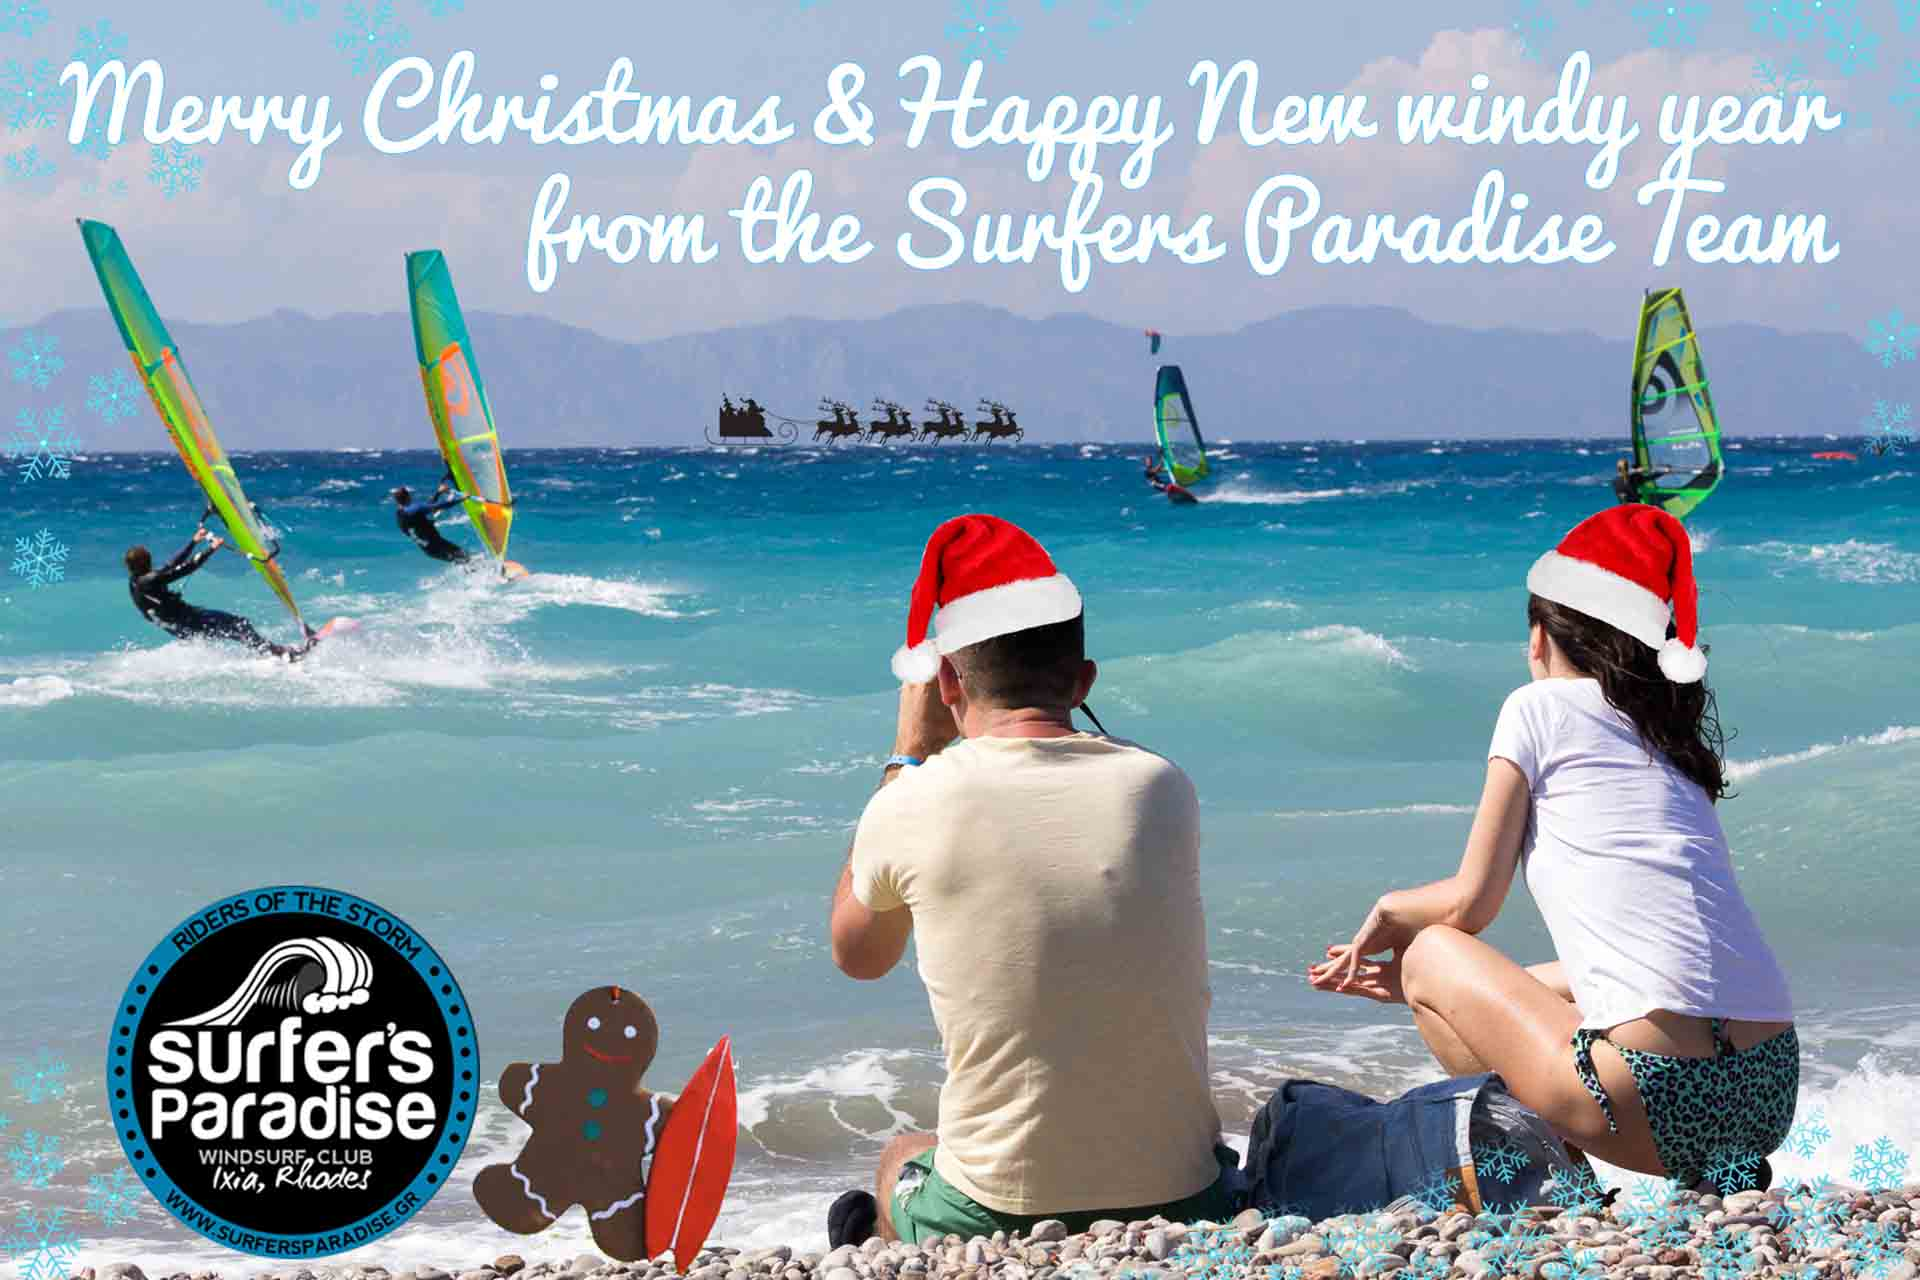 Merry Christmas and Happy New Year from us at Surfers Paradise